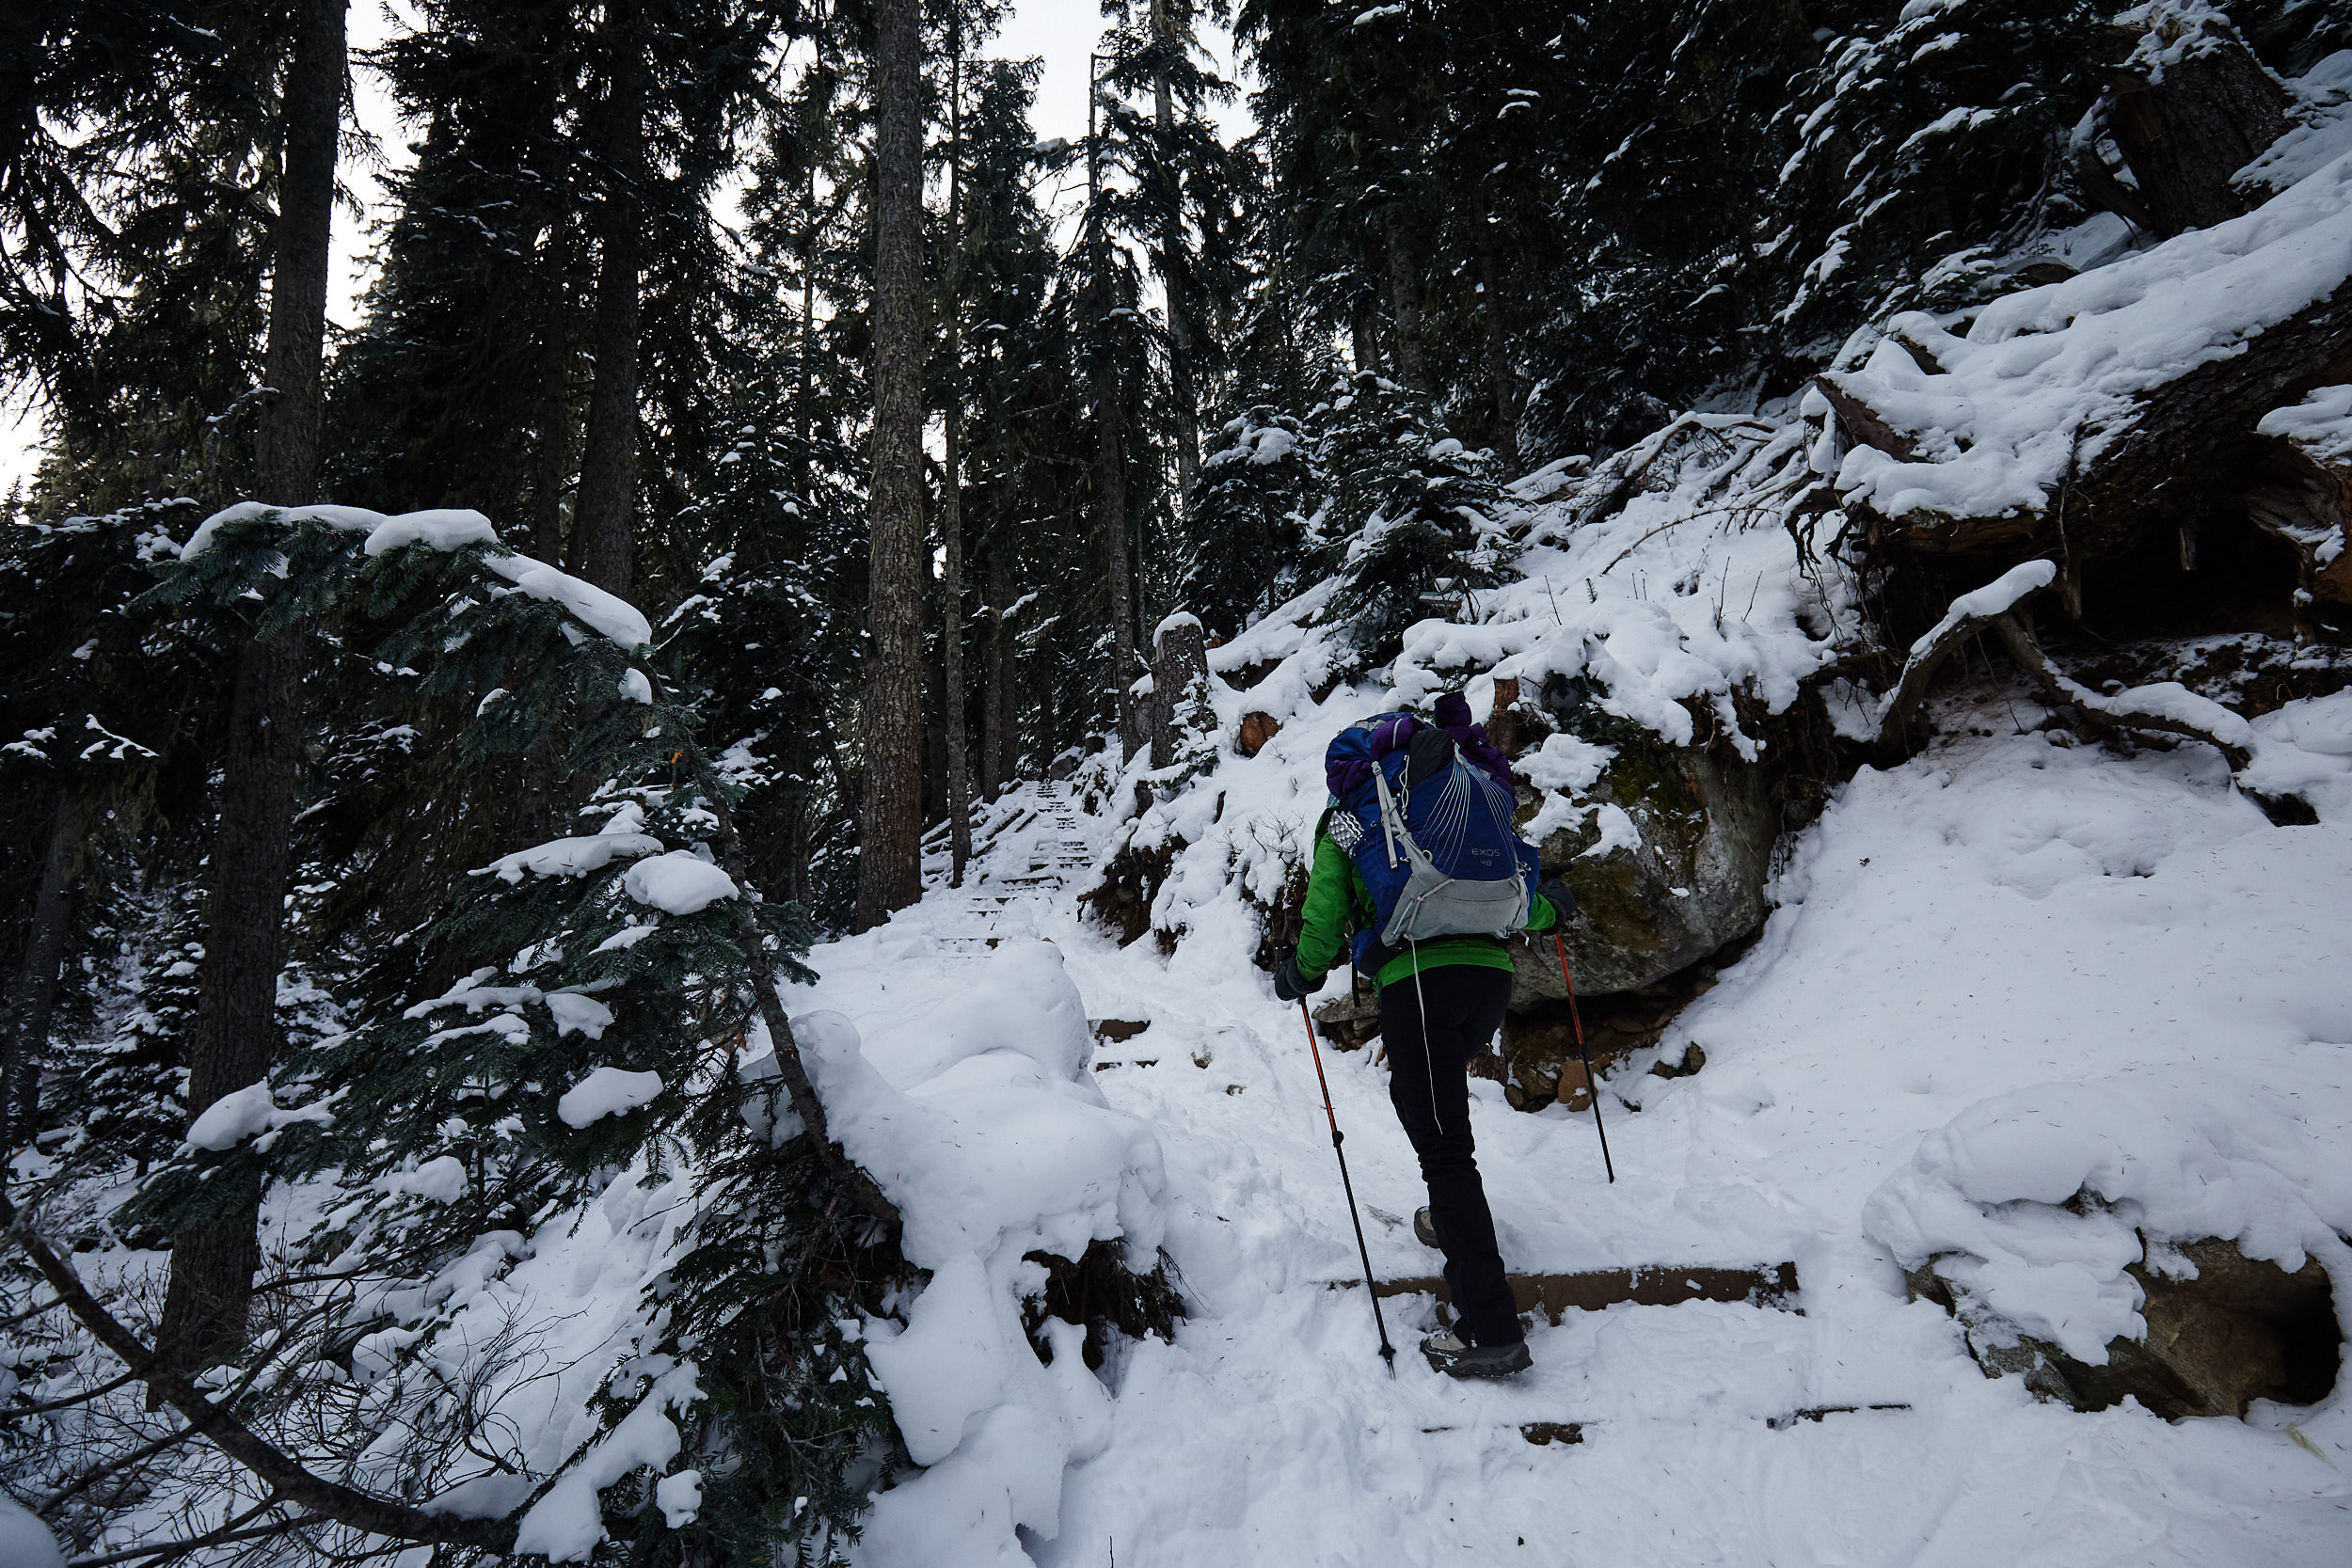 There are a set of wooden stairs that lead up to the 2nd lake. We had brought micro spikes in the event it would be icy but we didn't end up using them.